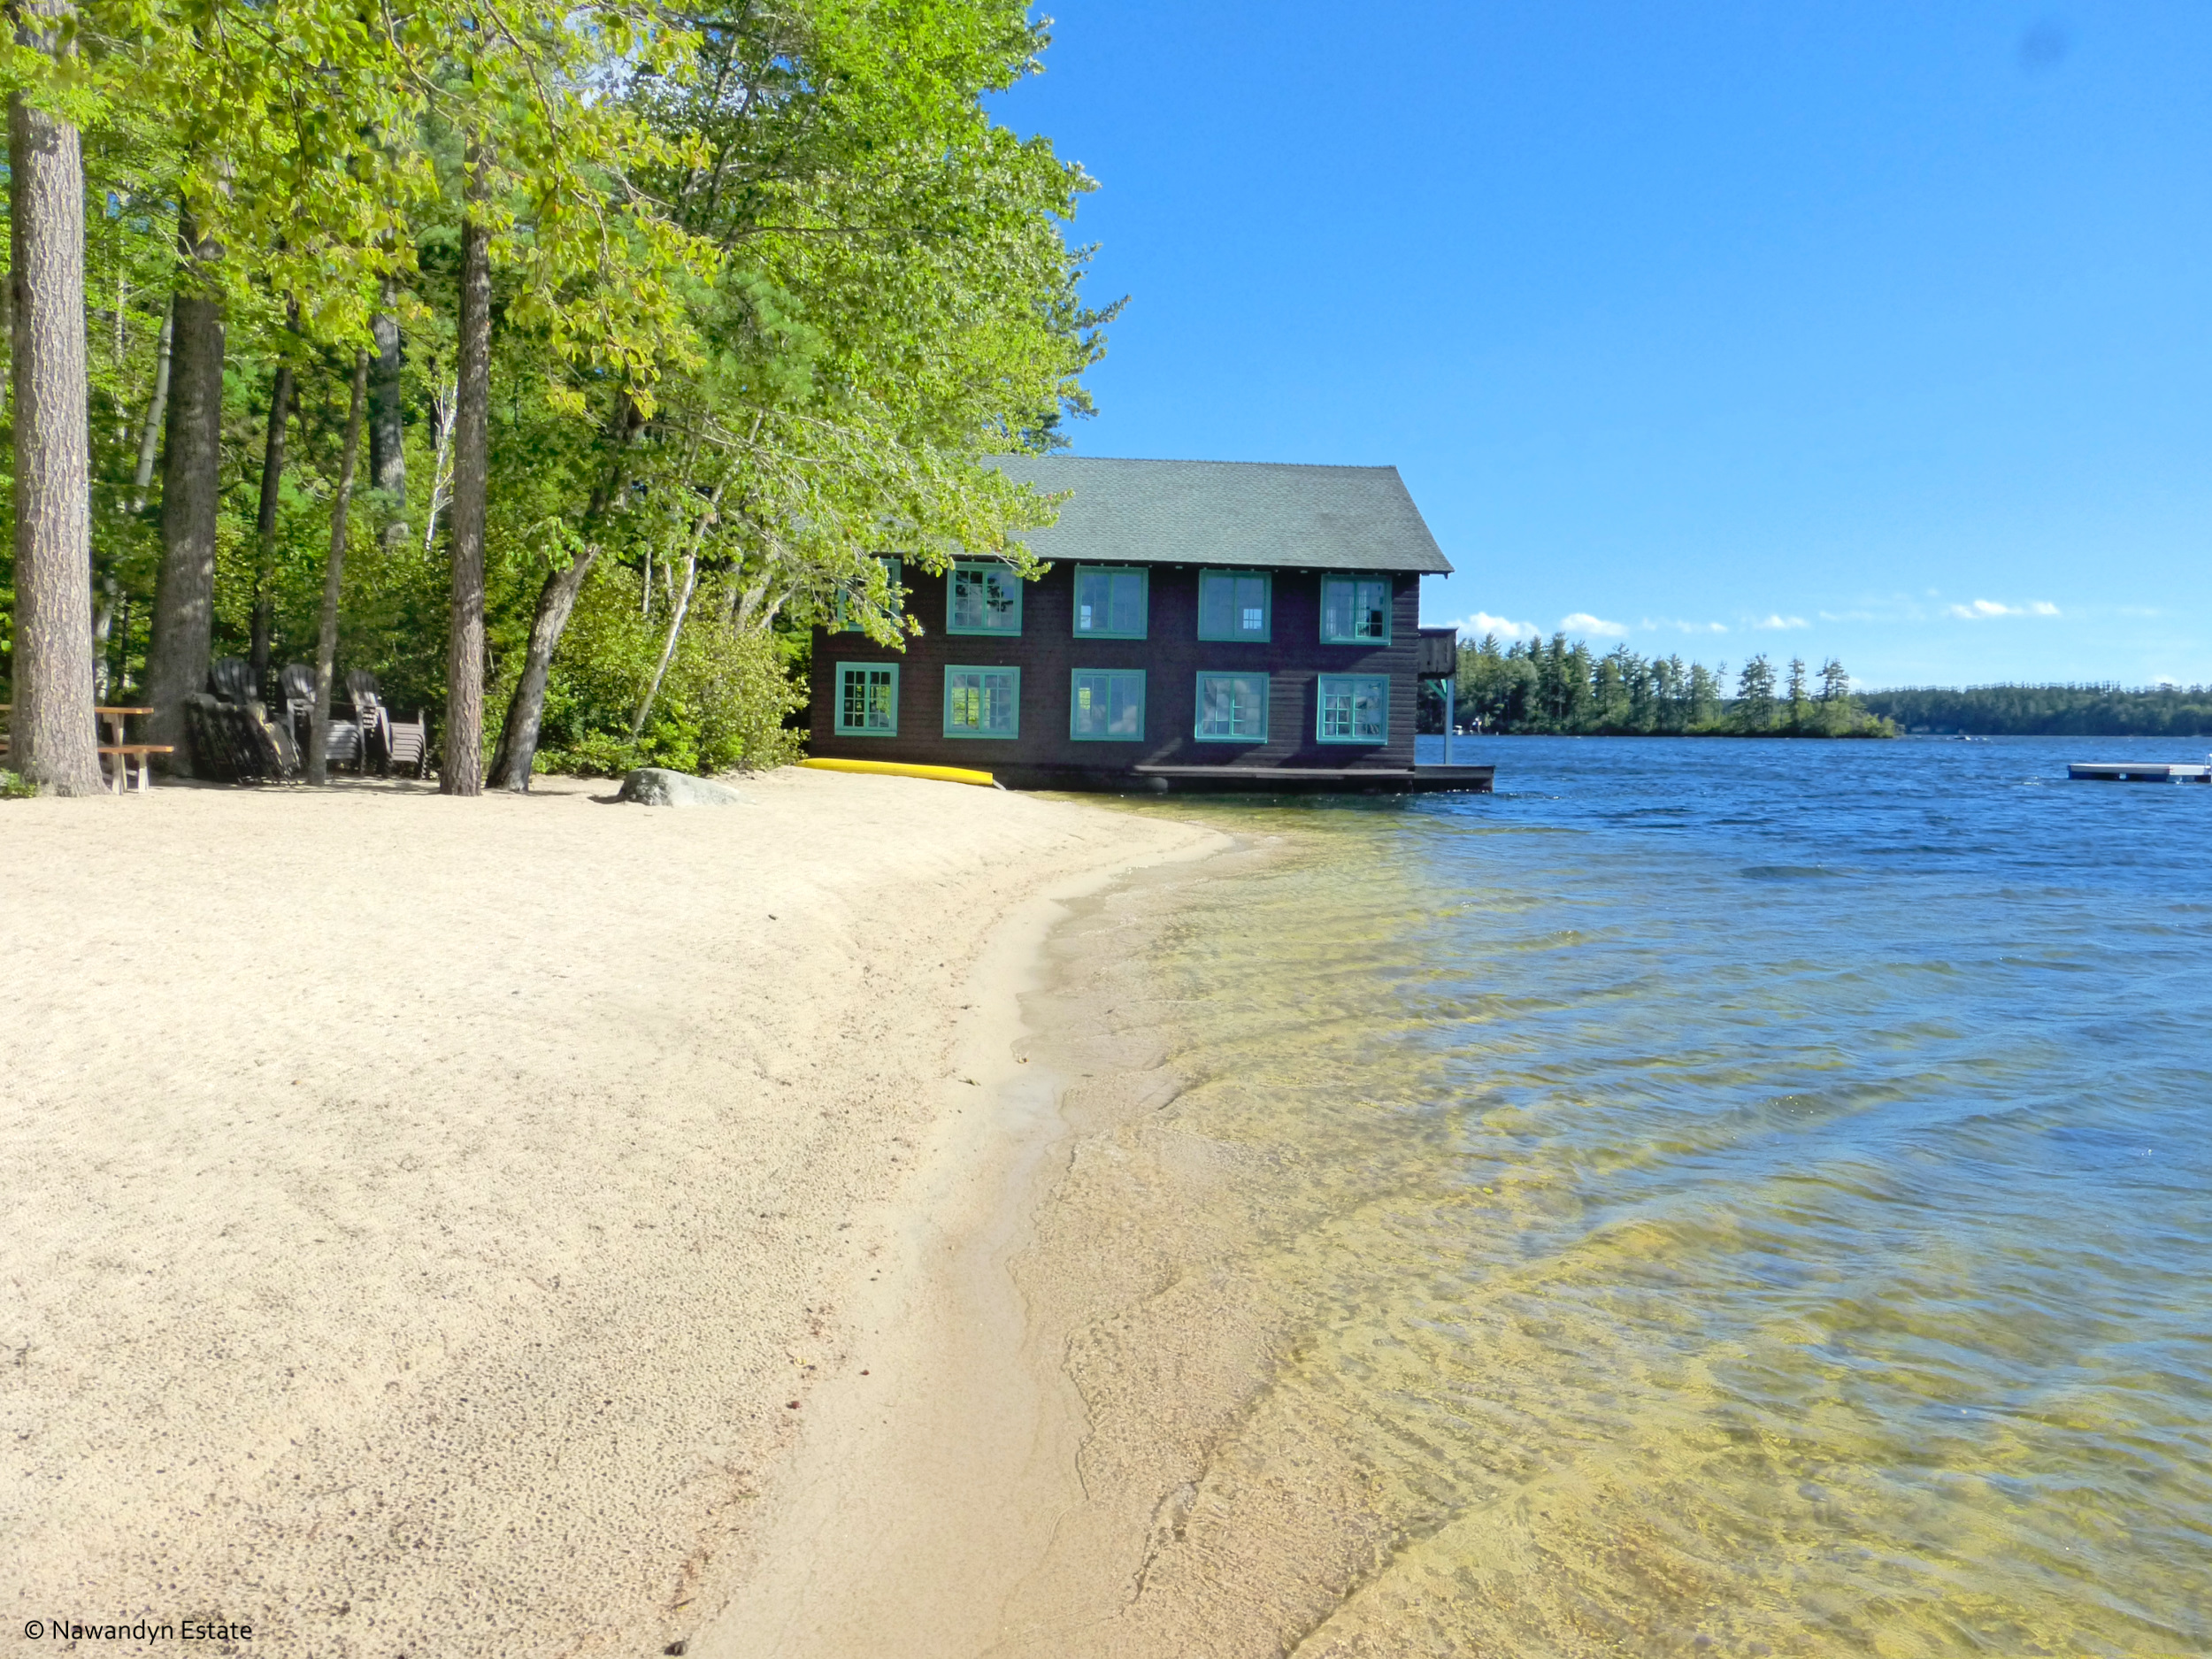 Private long sandy beach abuts Nawandyn Estate's boathouse